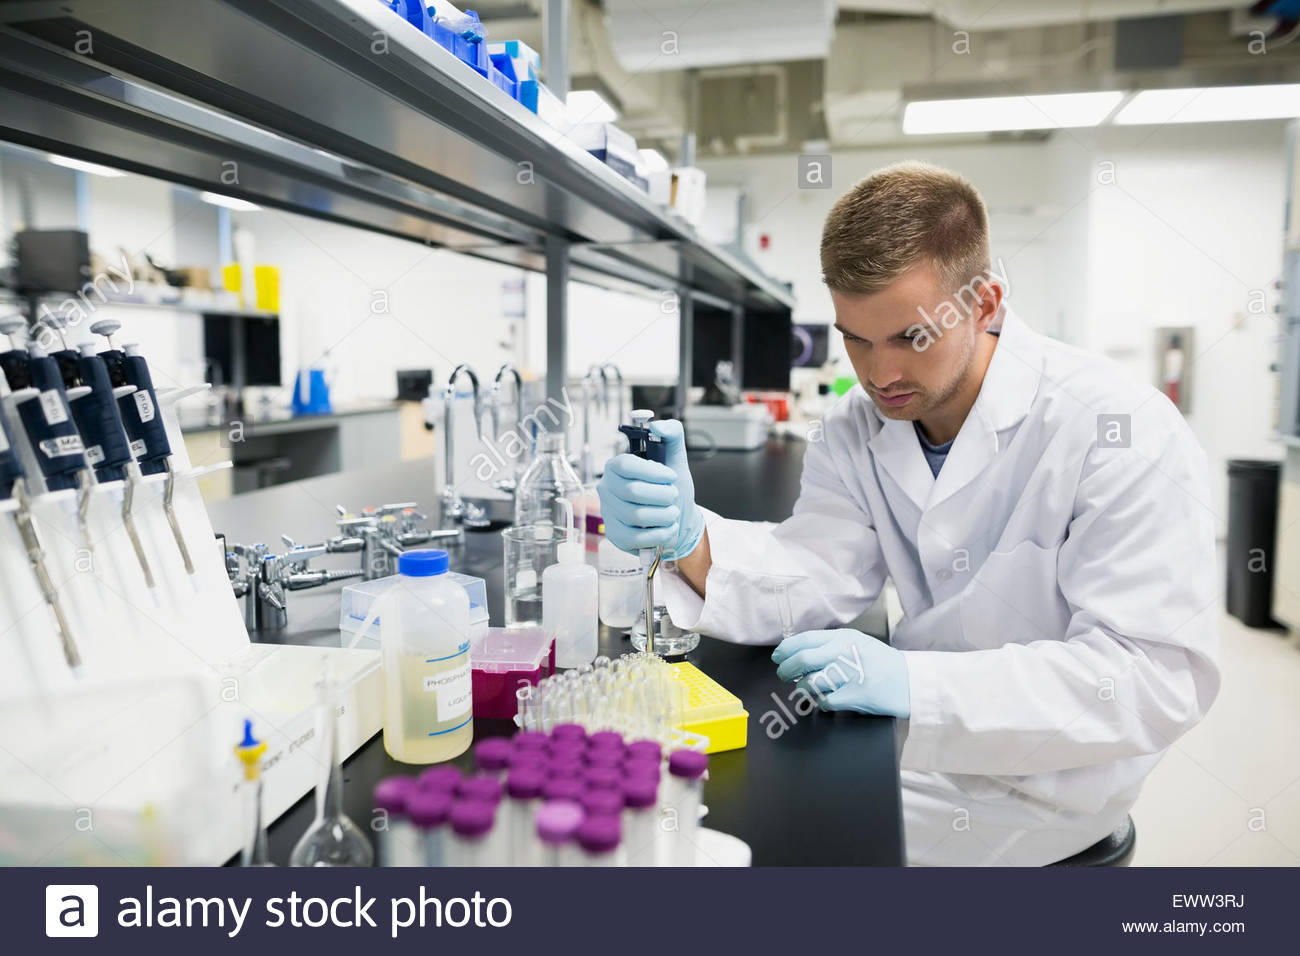 Scientist with pipette filling tray in laboratory - Stock Image